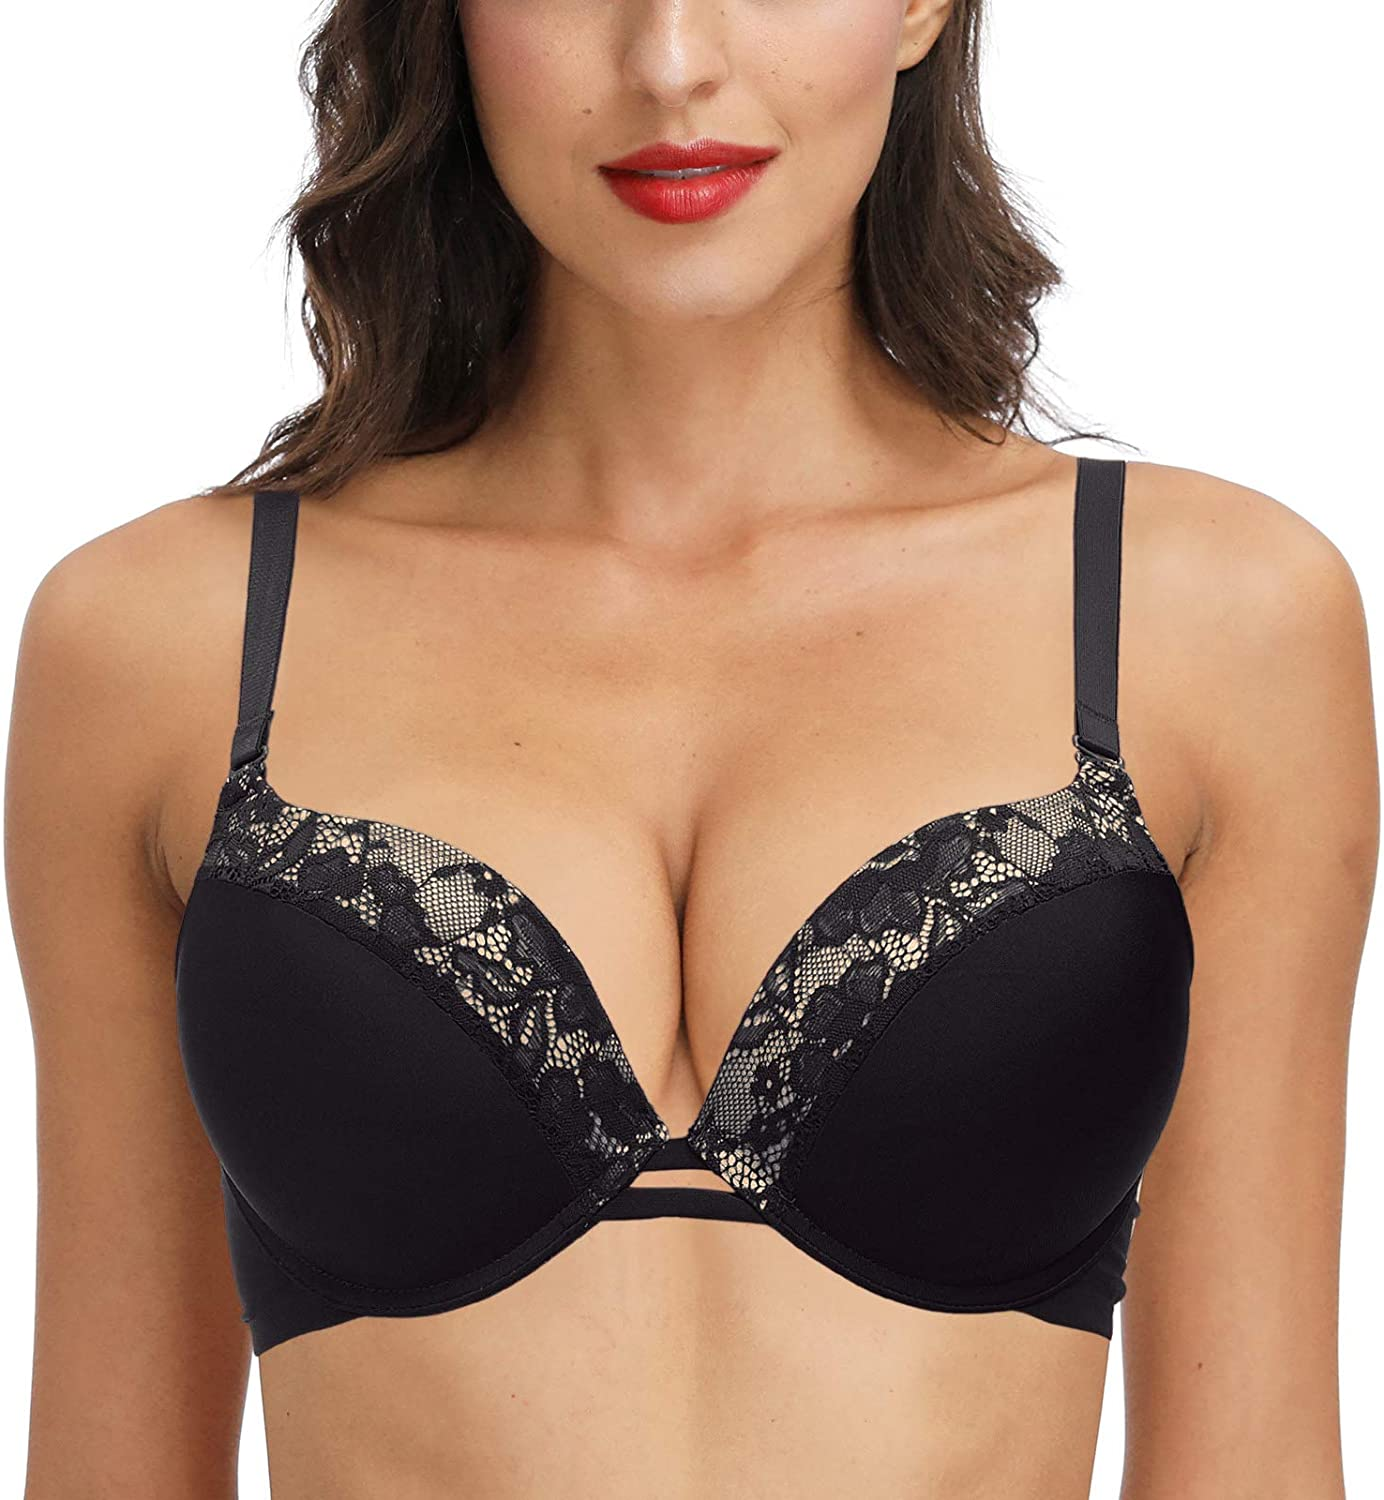 Low Neck-line Padded Bra for Small Chests - Plusexy Padded 'Add One Cup' Underwire Plunge Bra